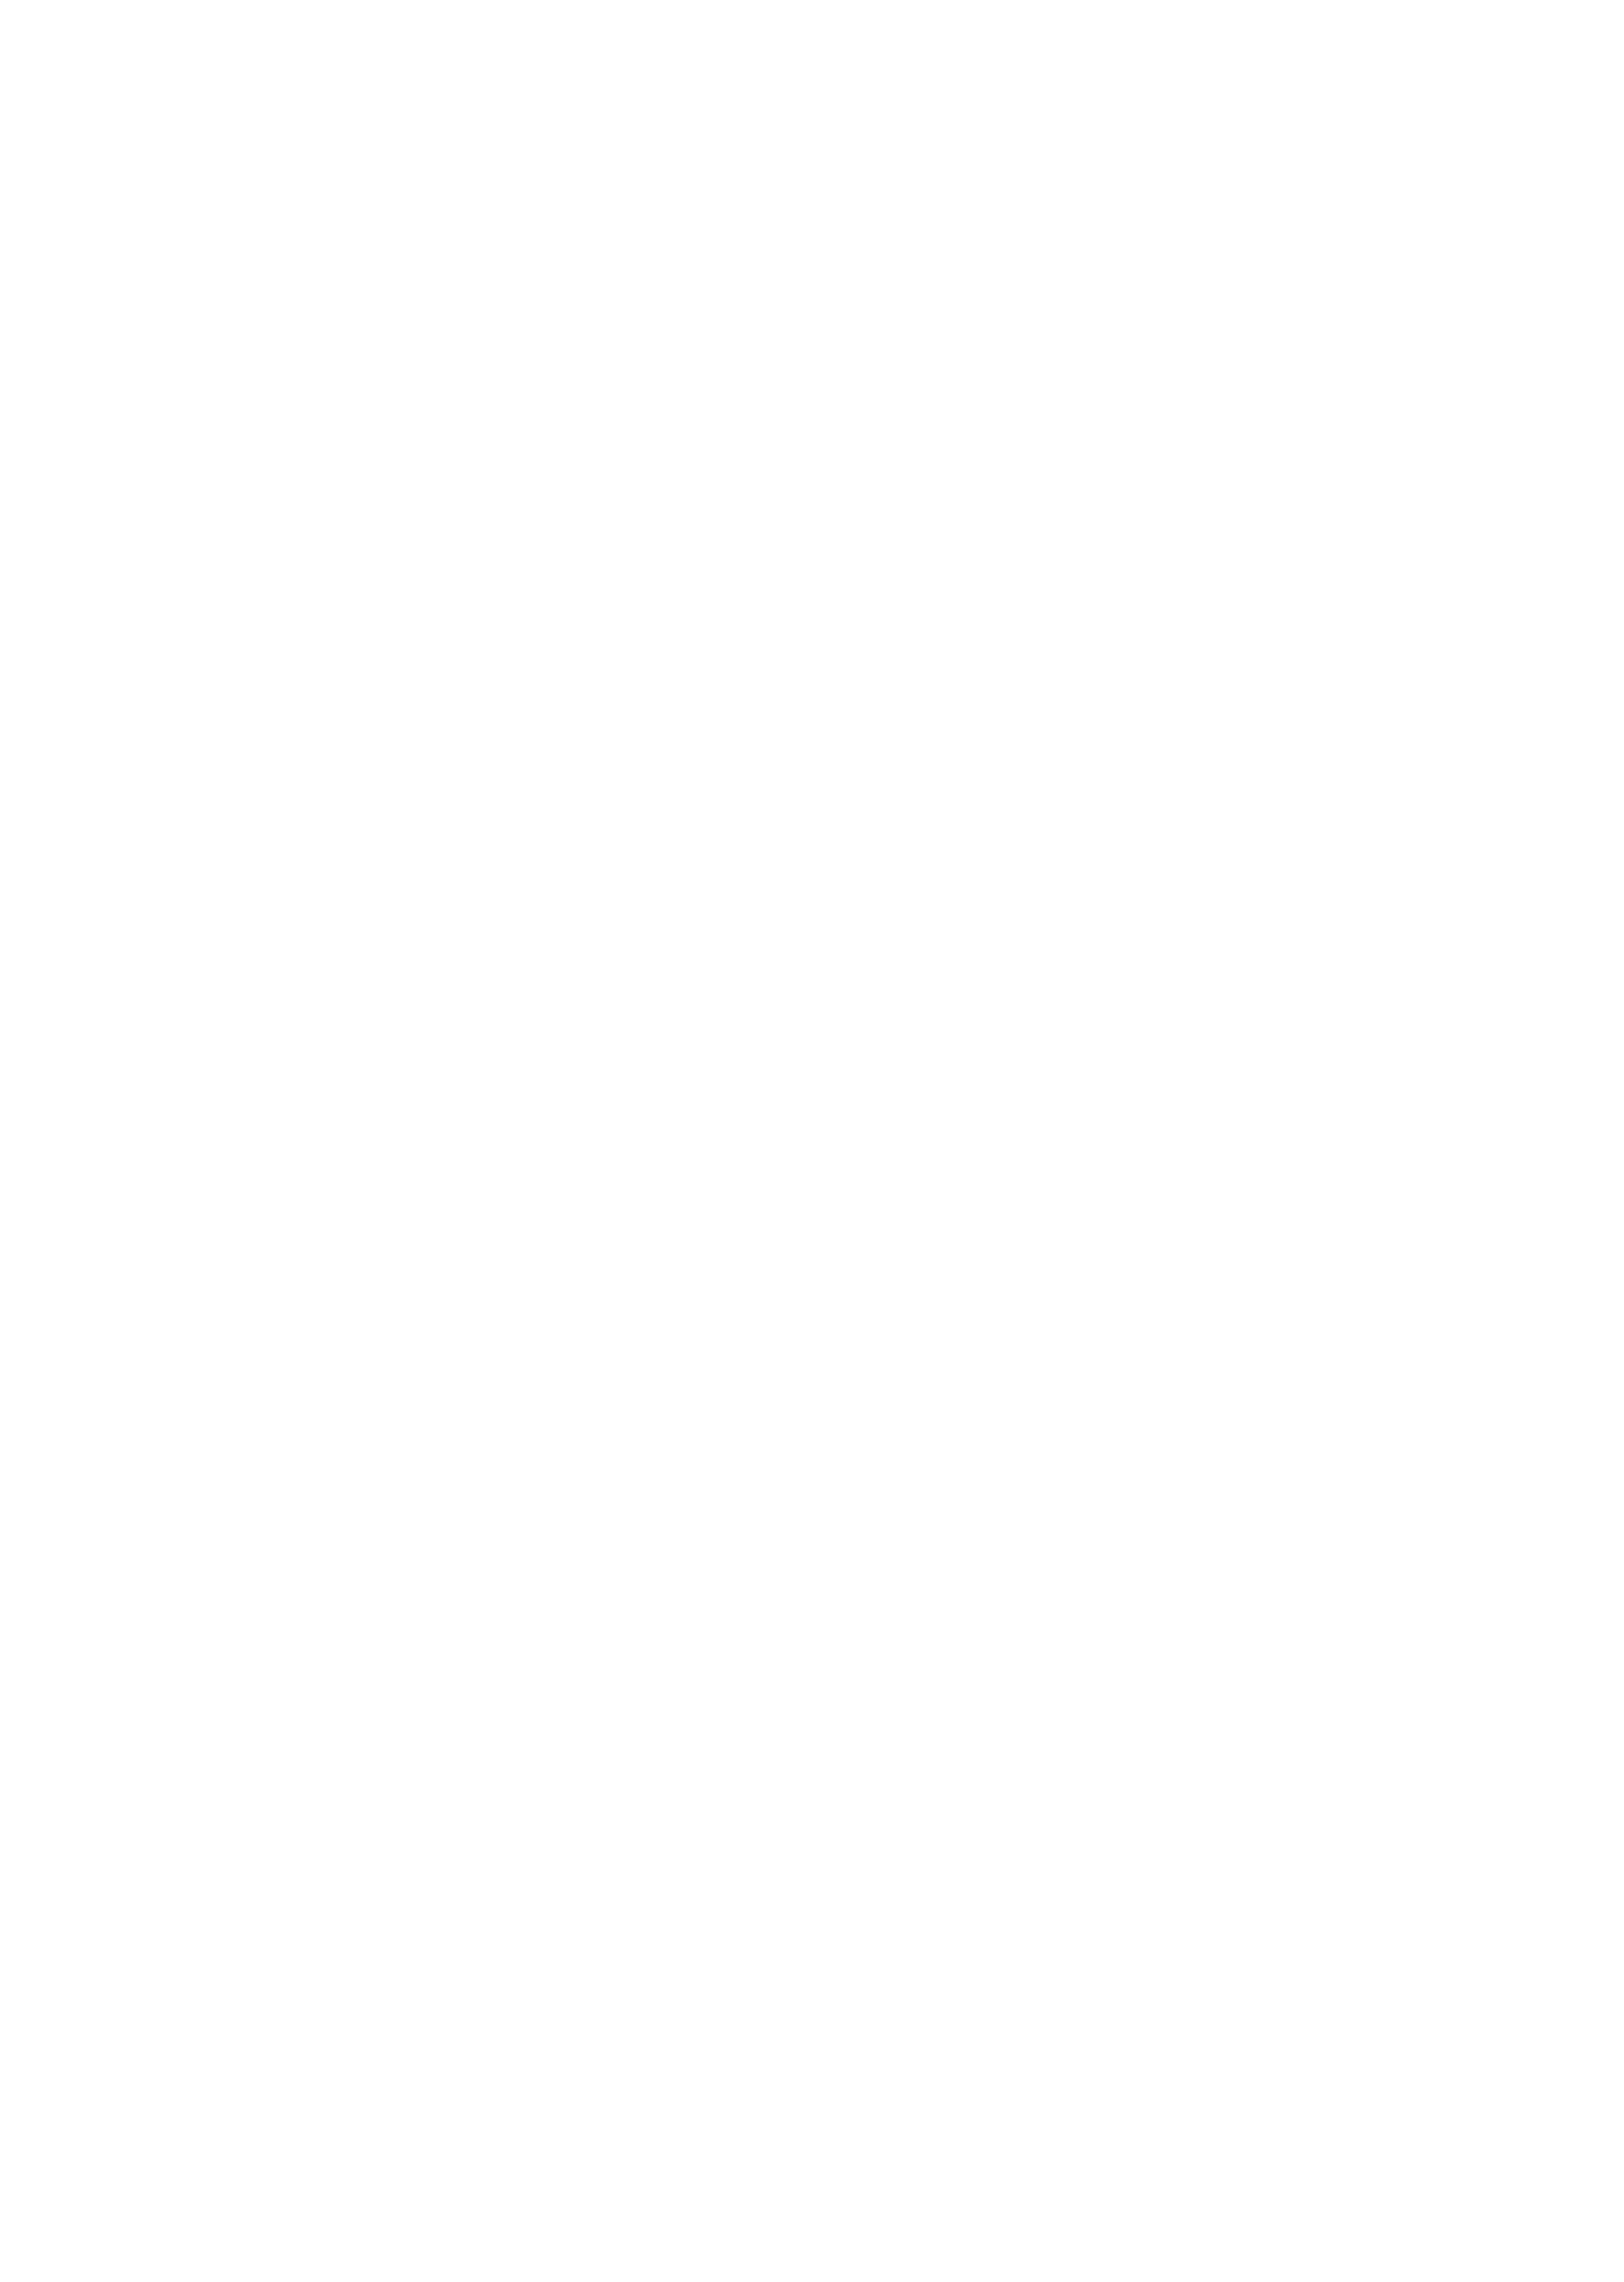 Black and white snowflake border clipart free transparent download Black and white Texture Shading - Snowflake Deco Border Frame ... transparent download